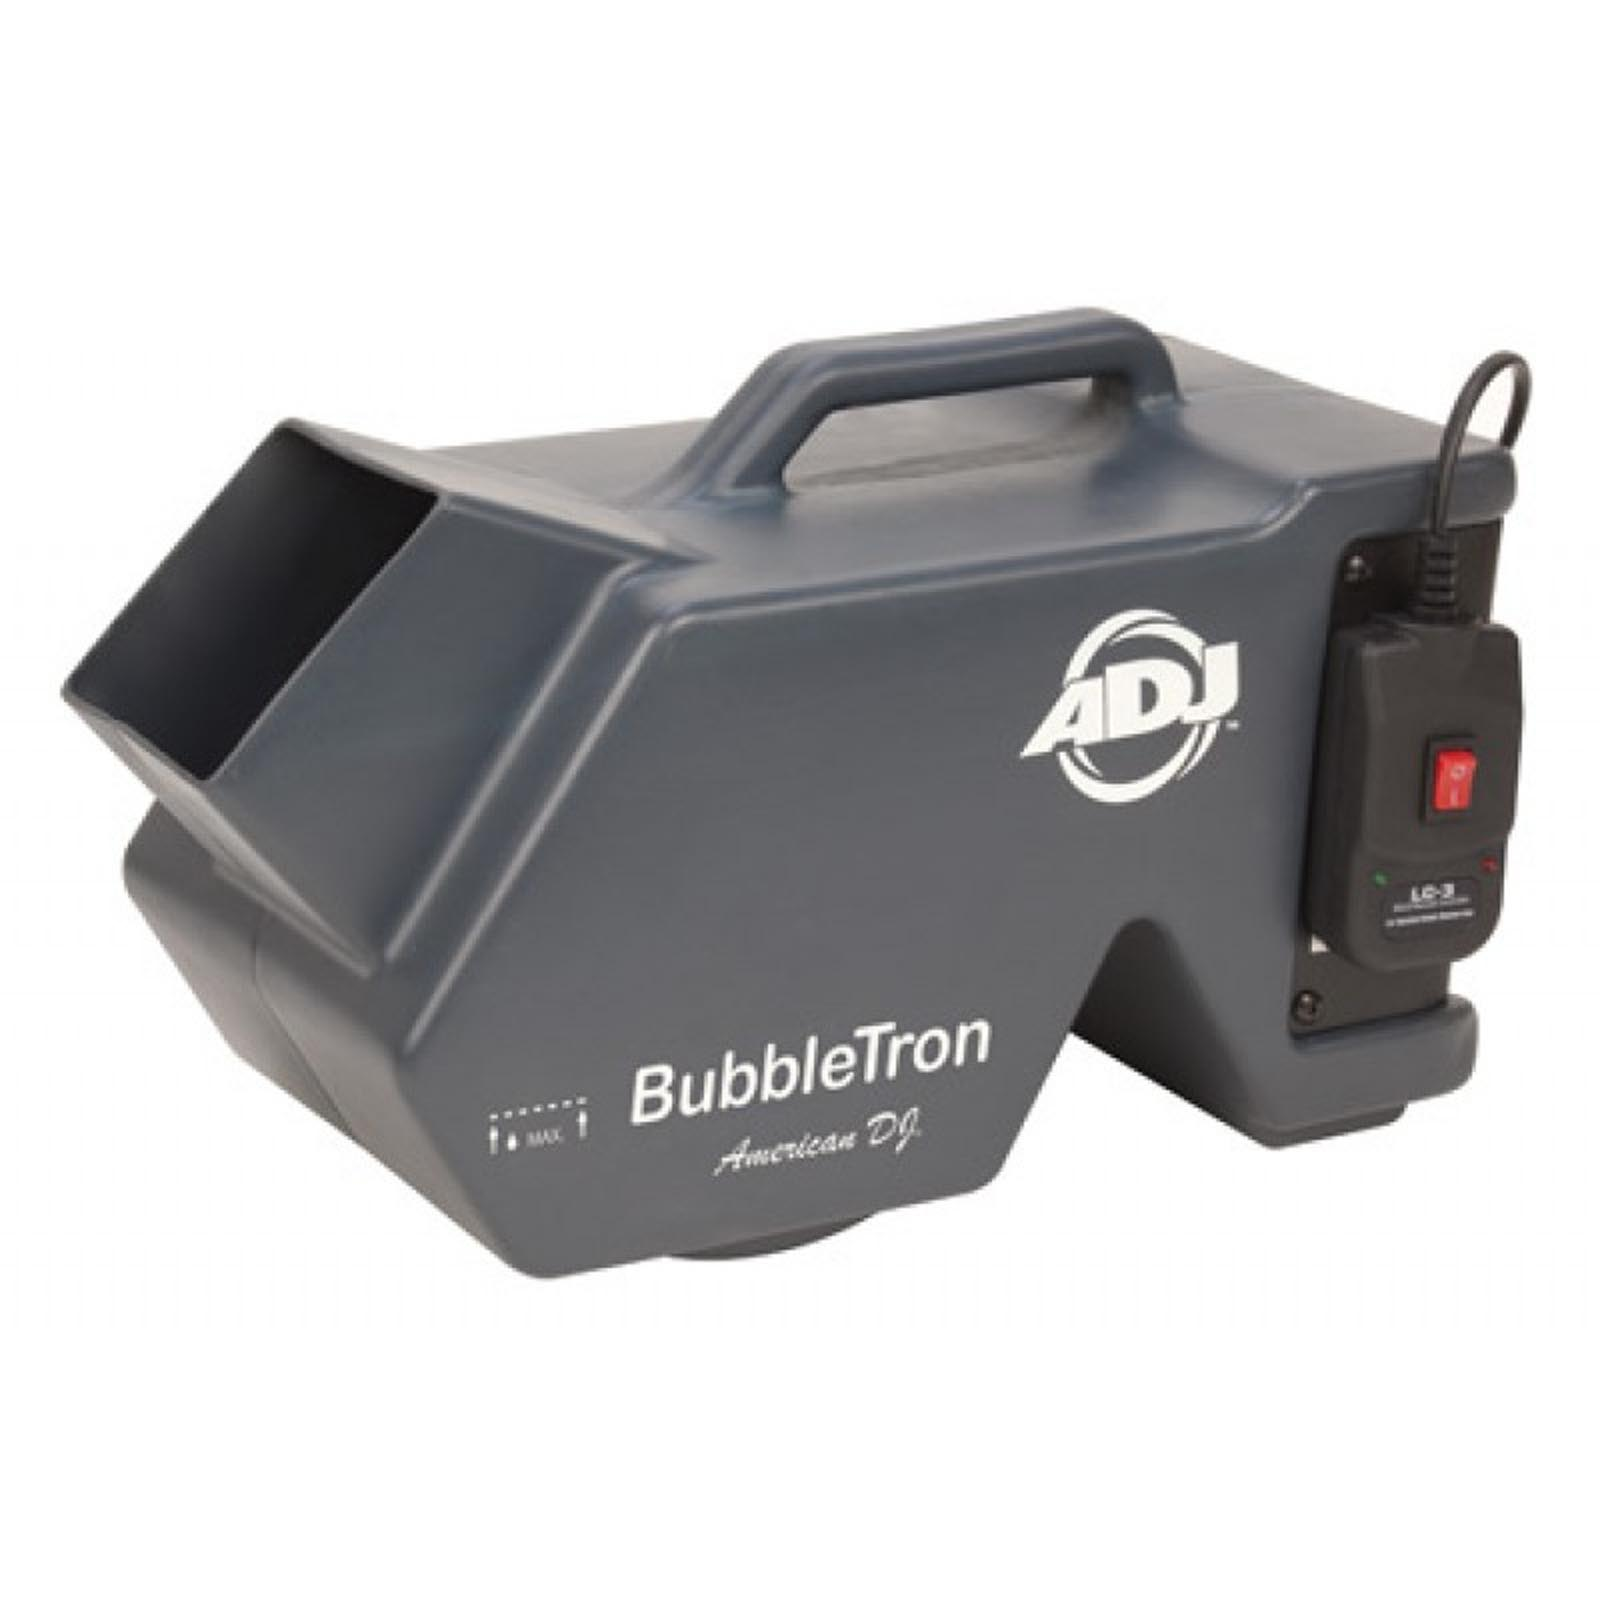 American DJ Professional Portable Automatic Party Bubble Machine with Remote